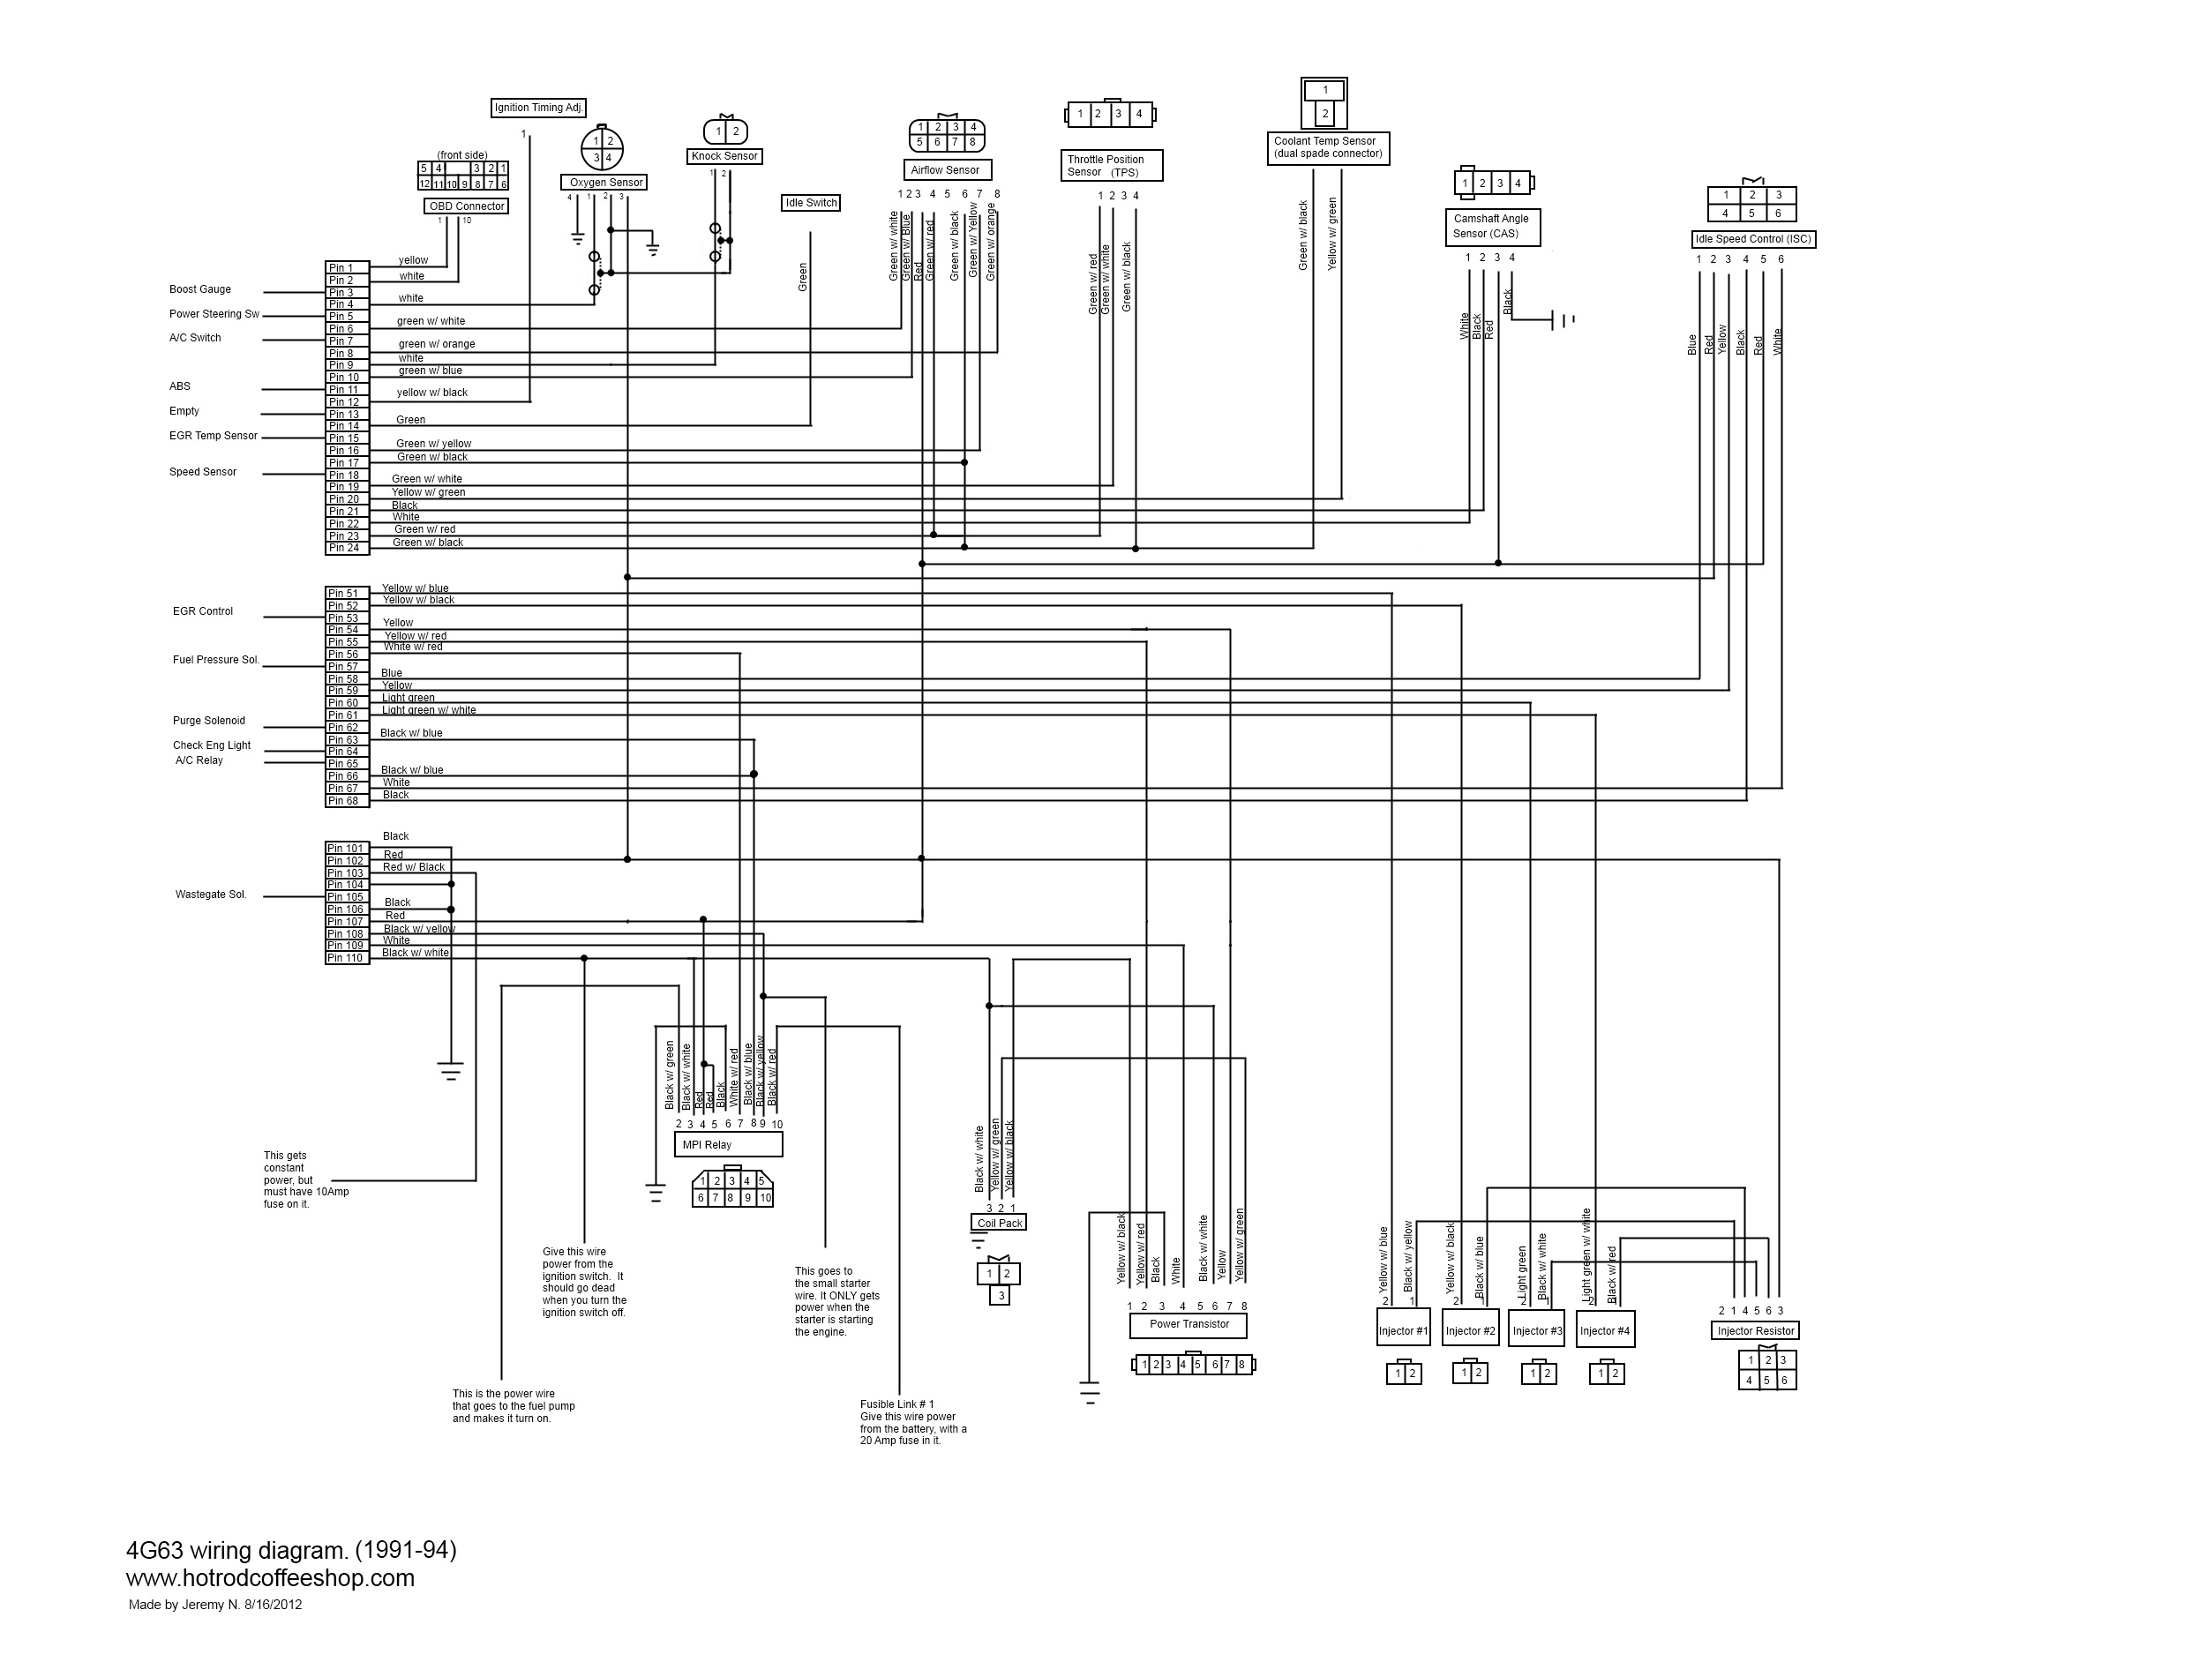 mitsubishi fx3u wiring diagram mitsubishi wiring diagrams online any like 4g63